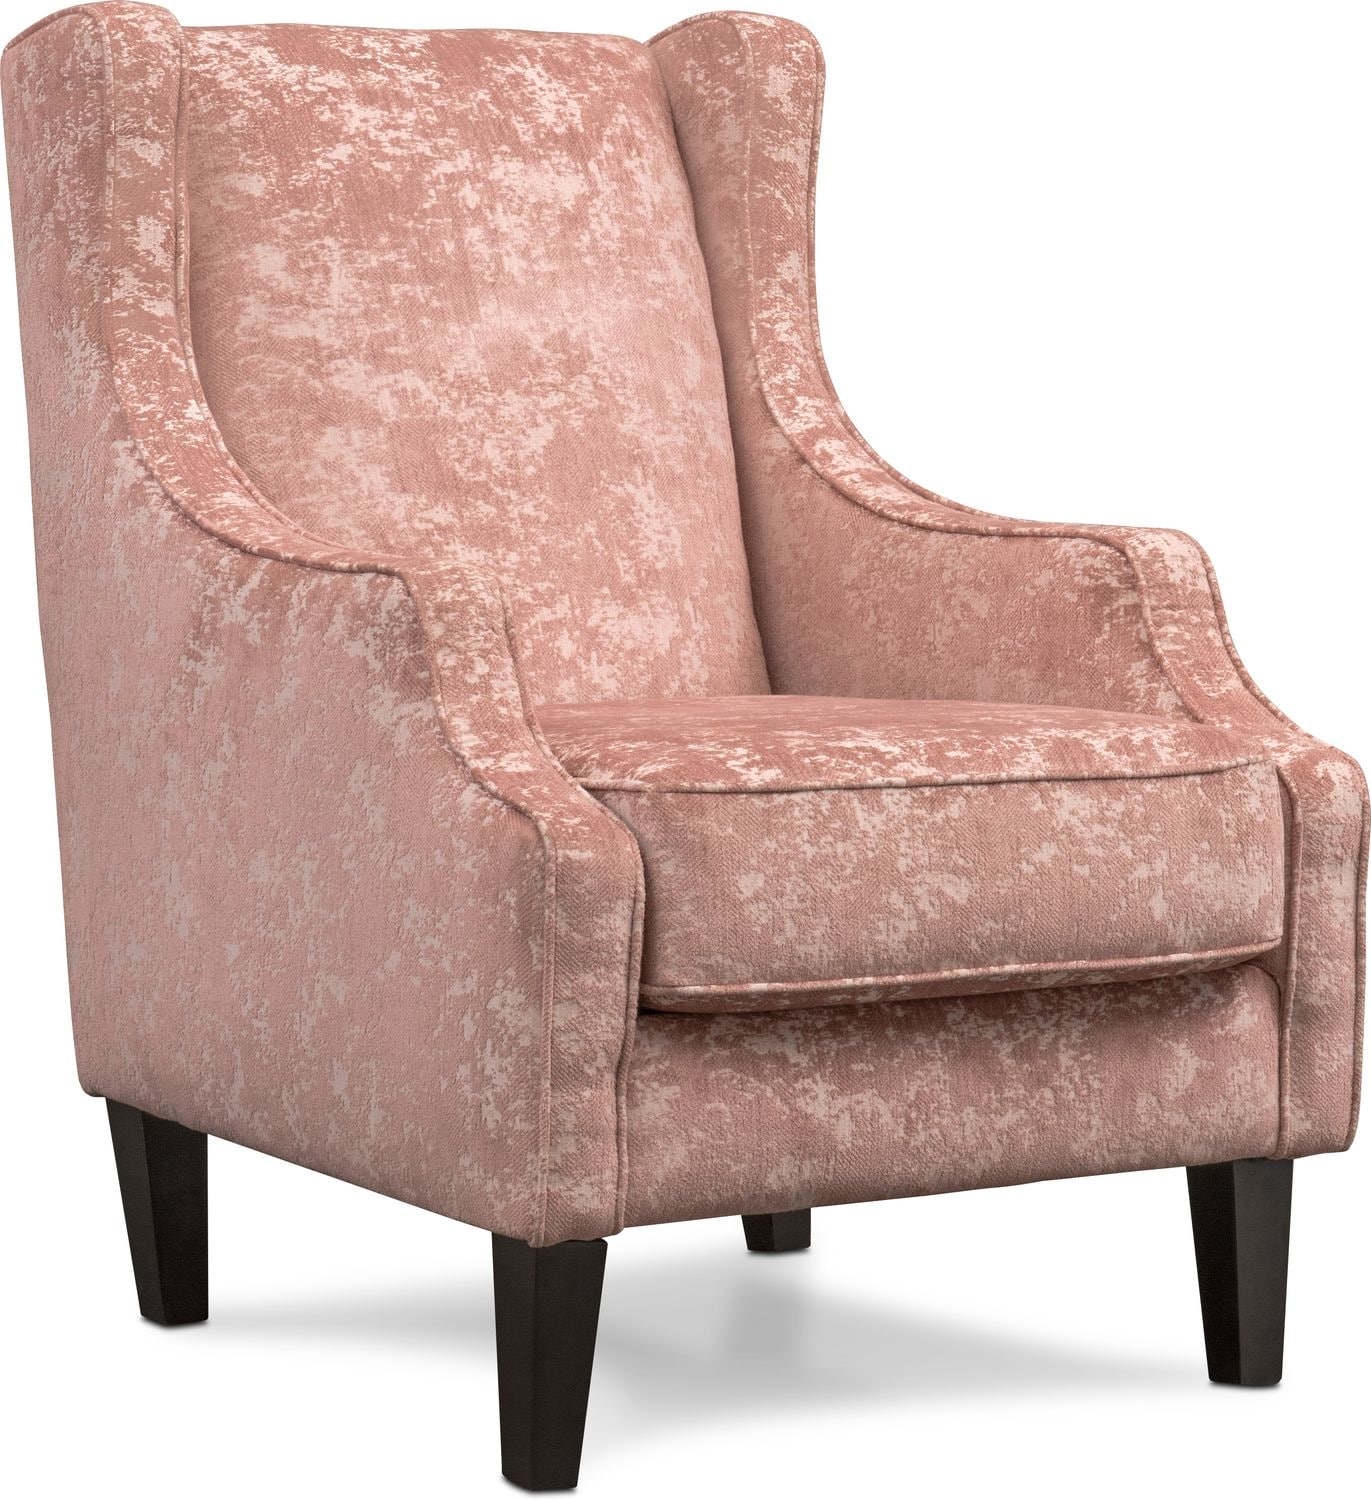 Campbell Accent Chair - Blush